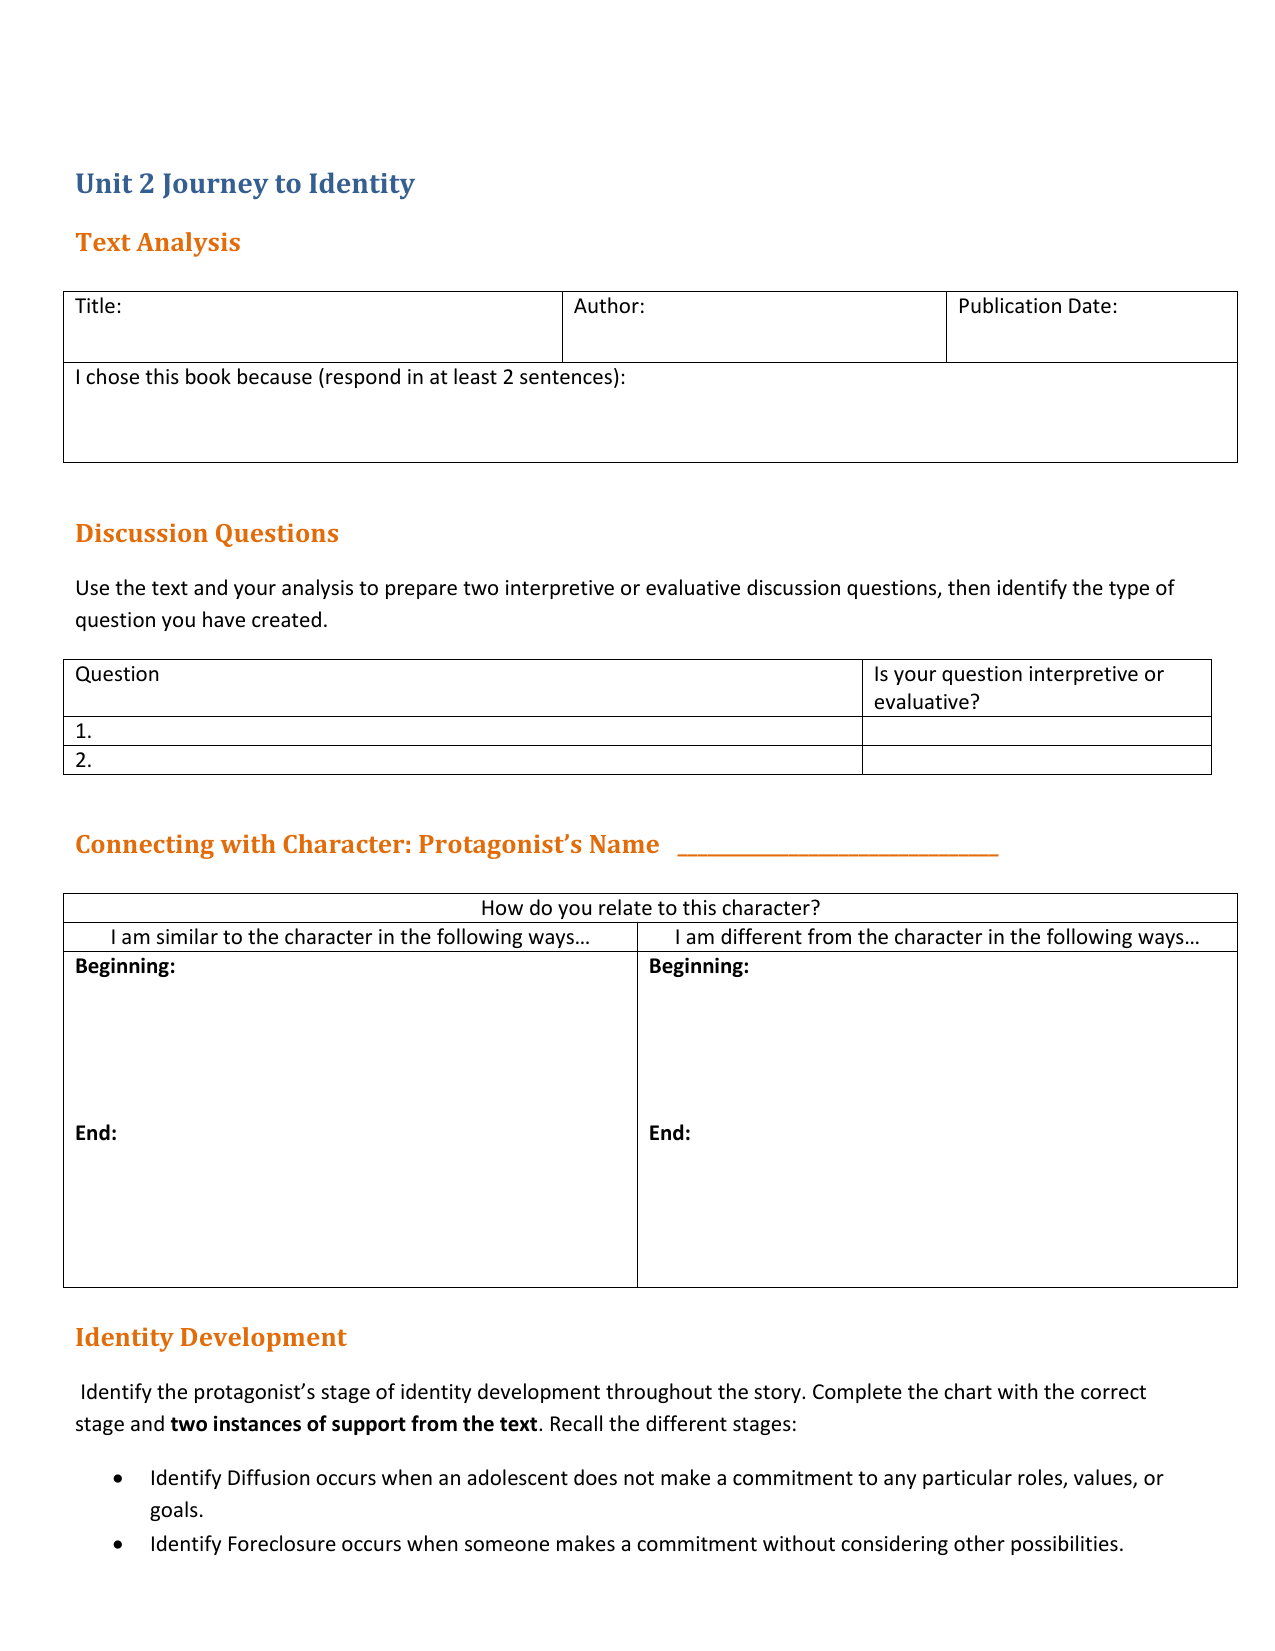 Textysis Worksheet